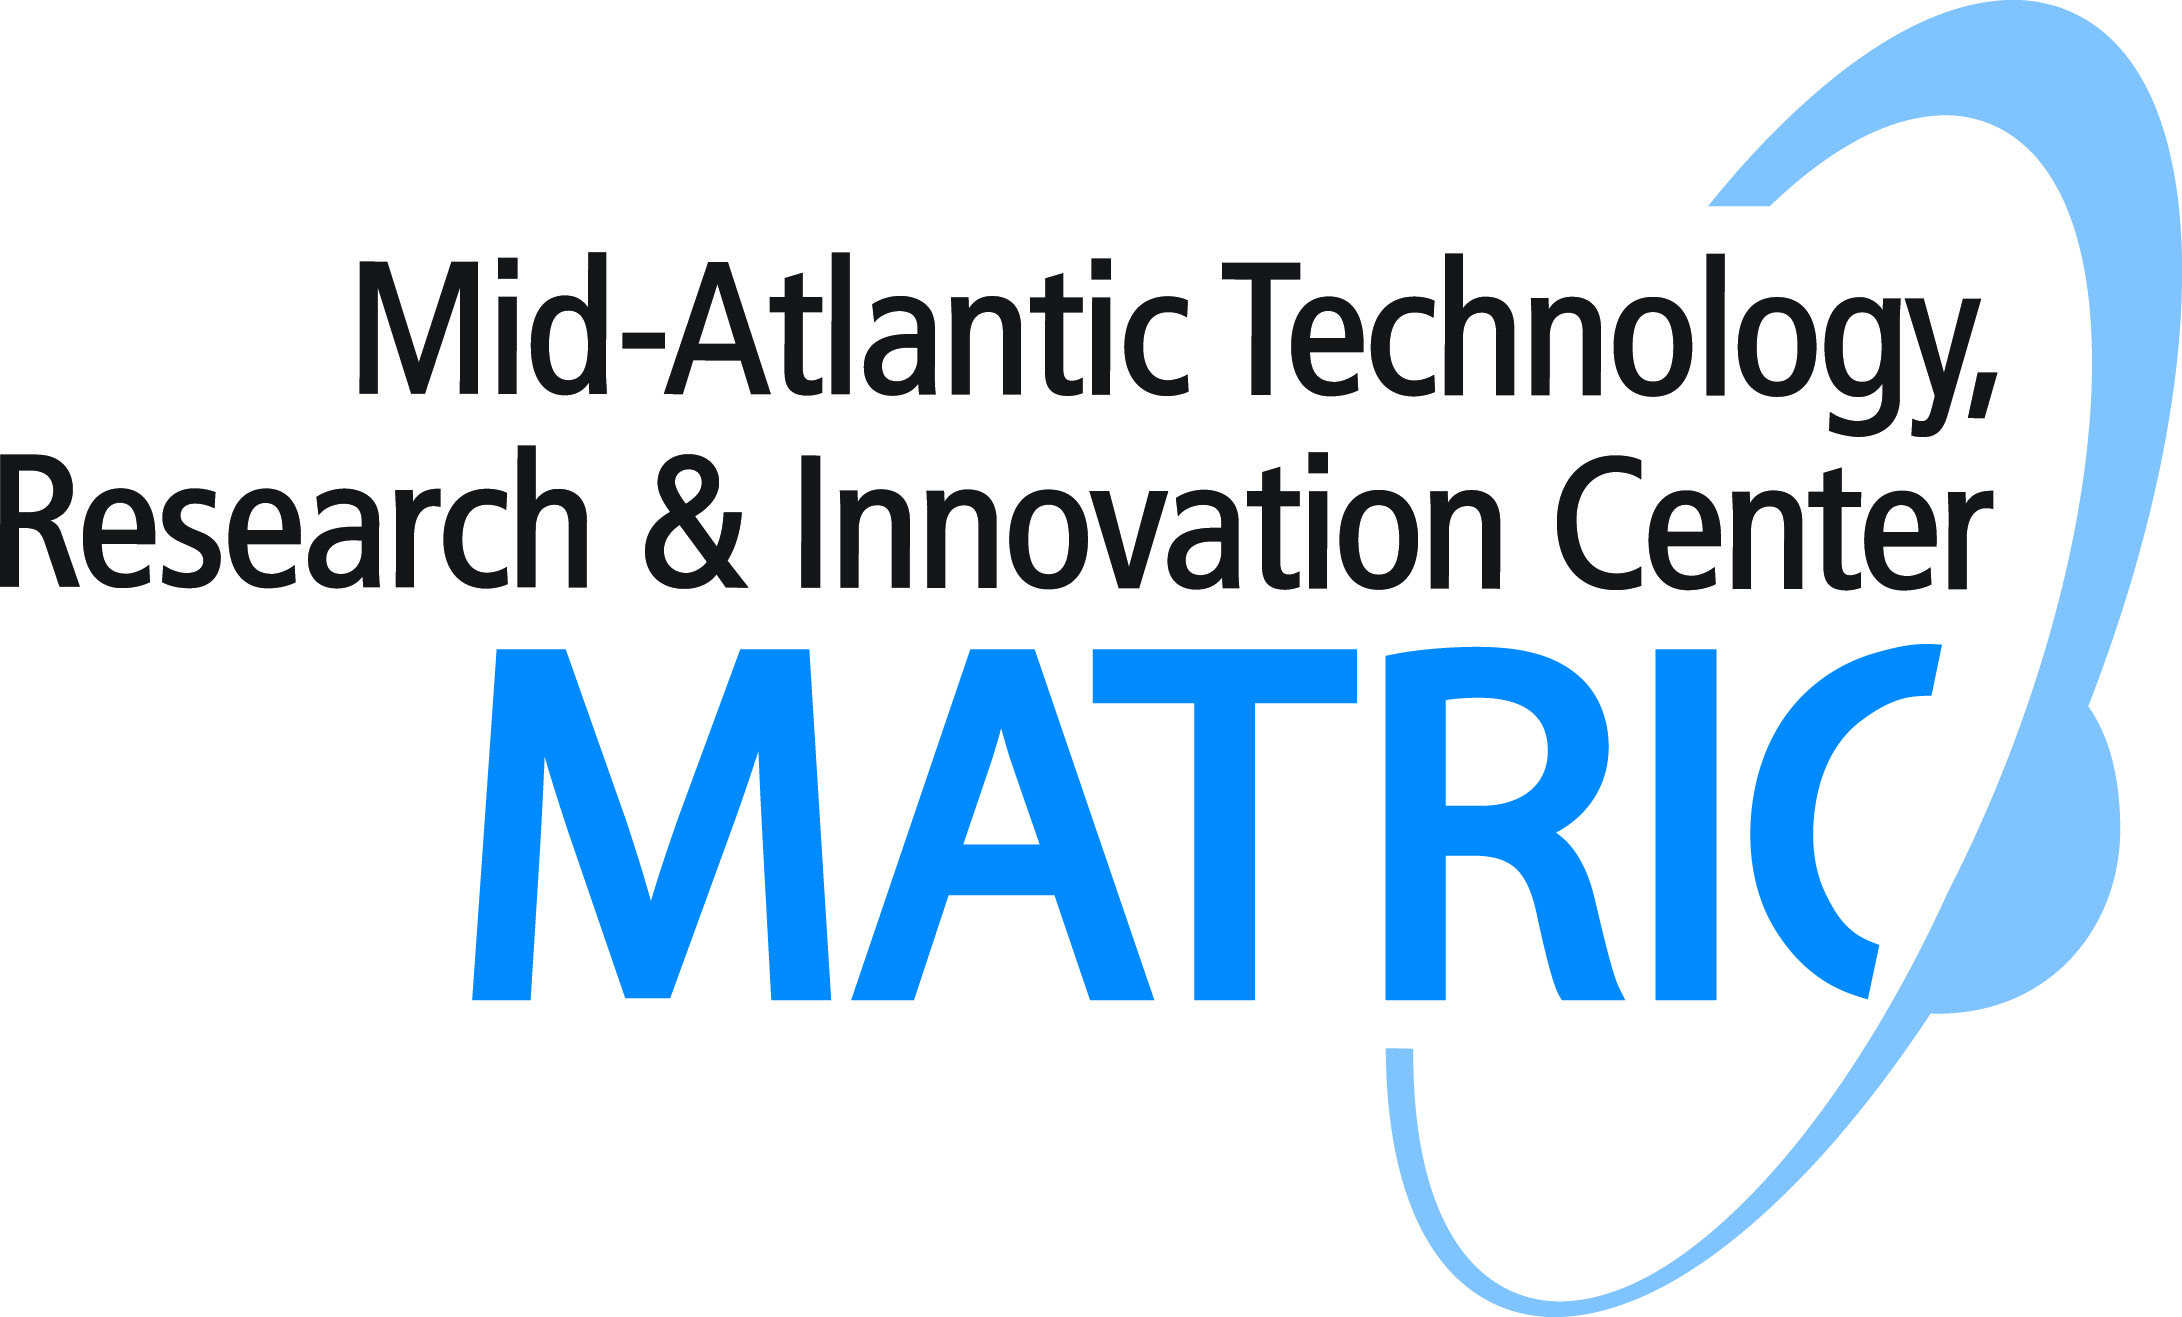 MATRIC Mid-Atlantic Technology, Research & Innovation Center